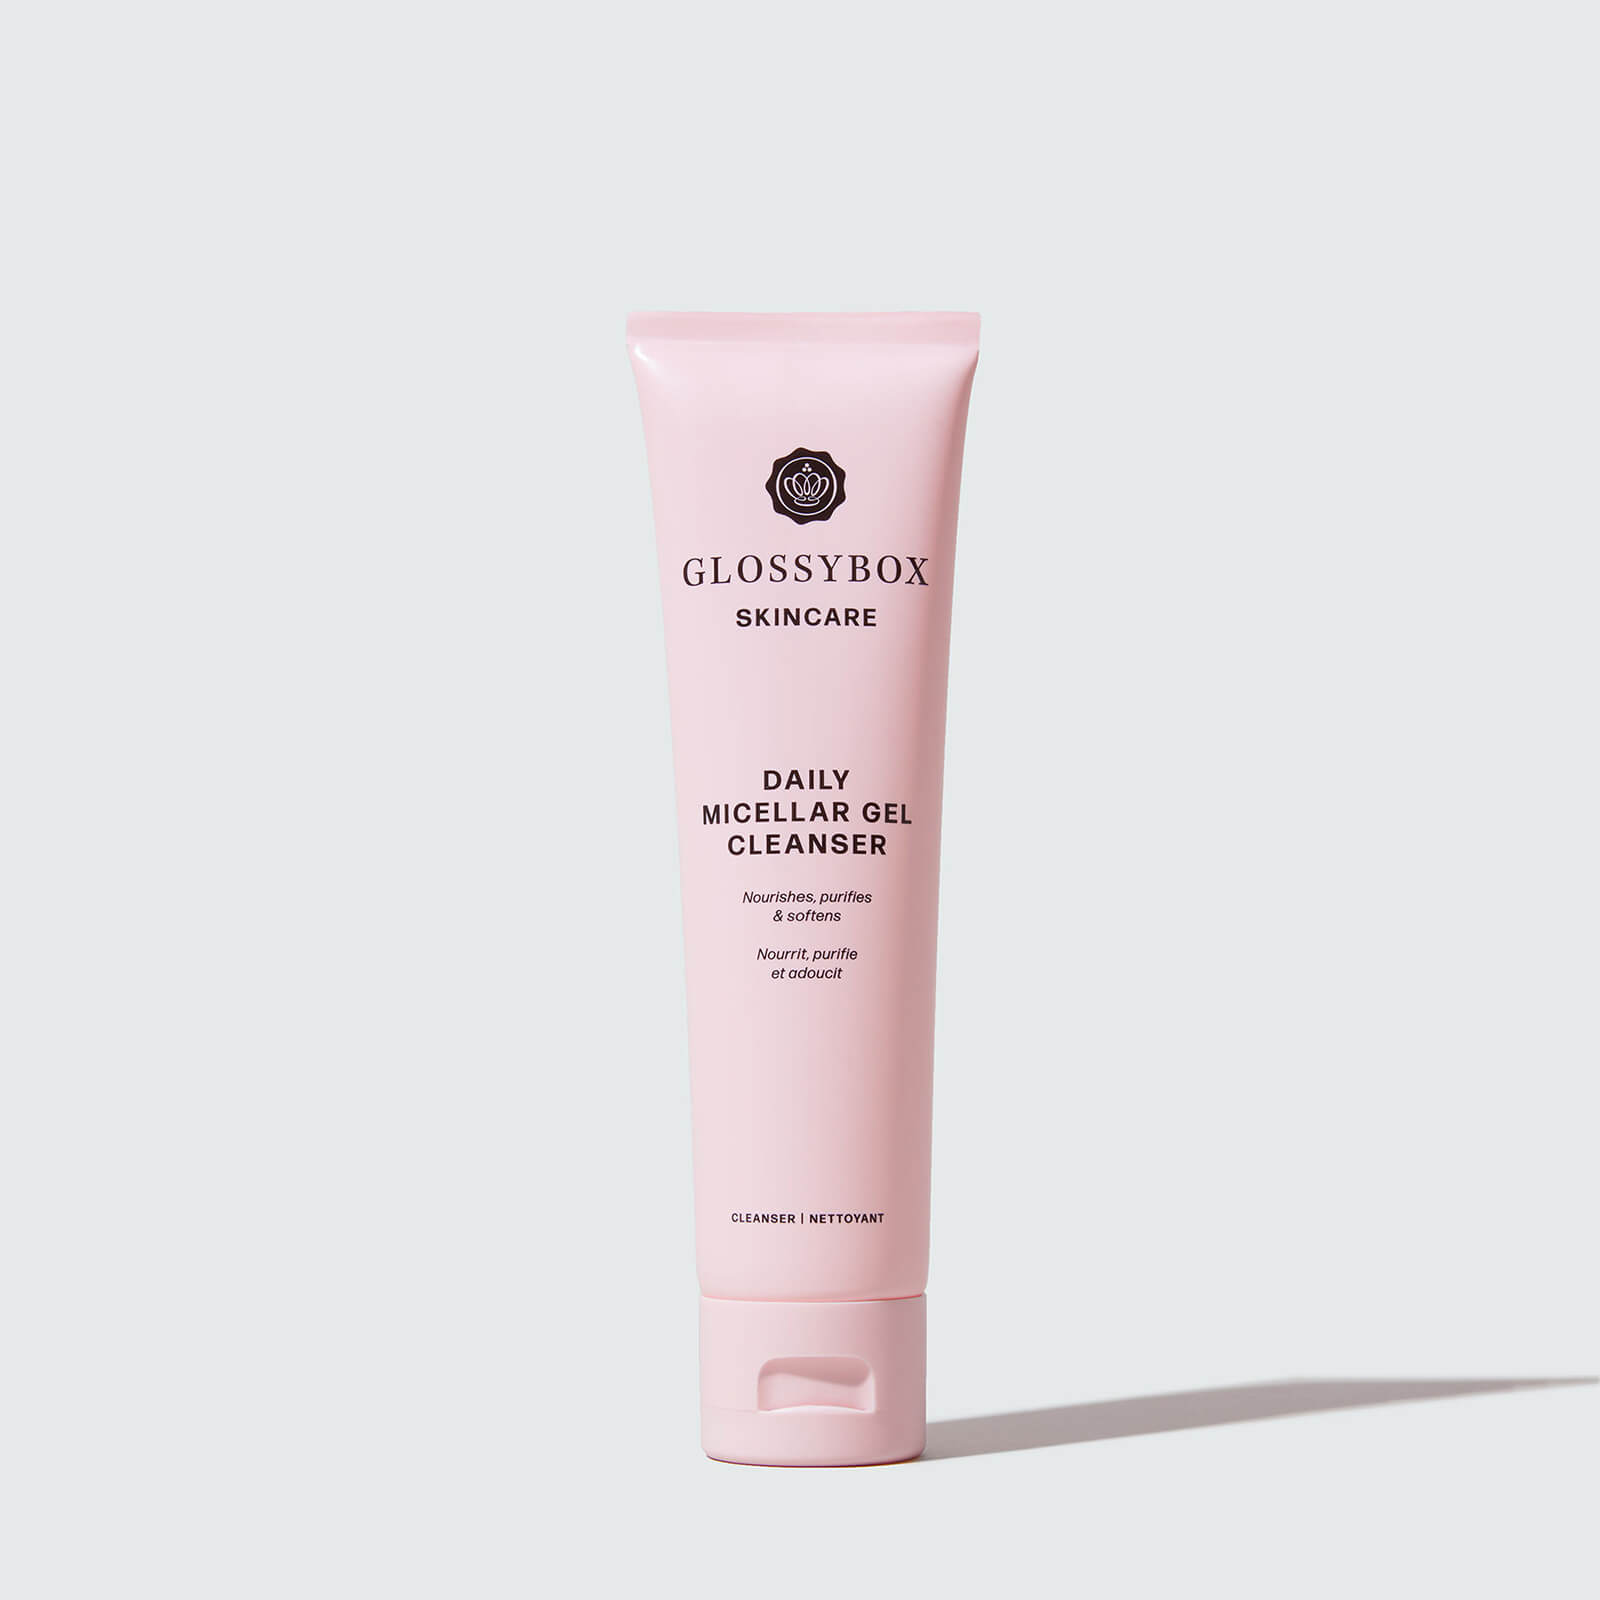 Glossy Box coupon: GLOSSYBOX Daily Micellar Gel Cleanser 100ml